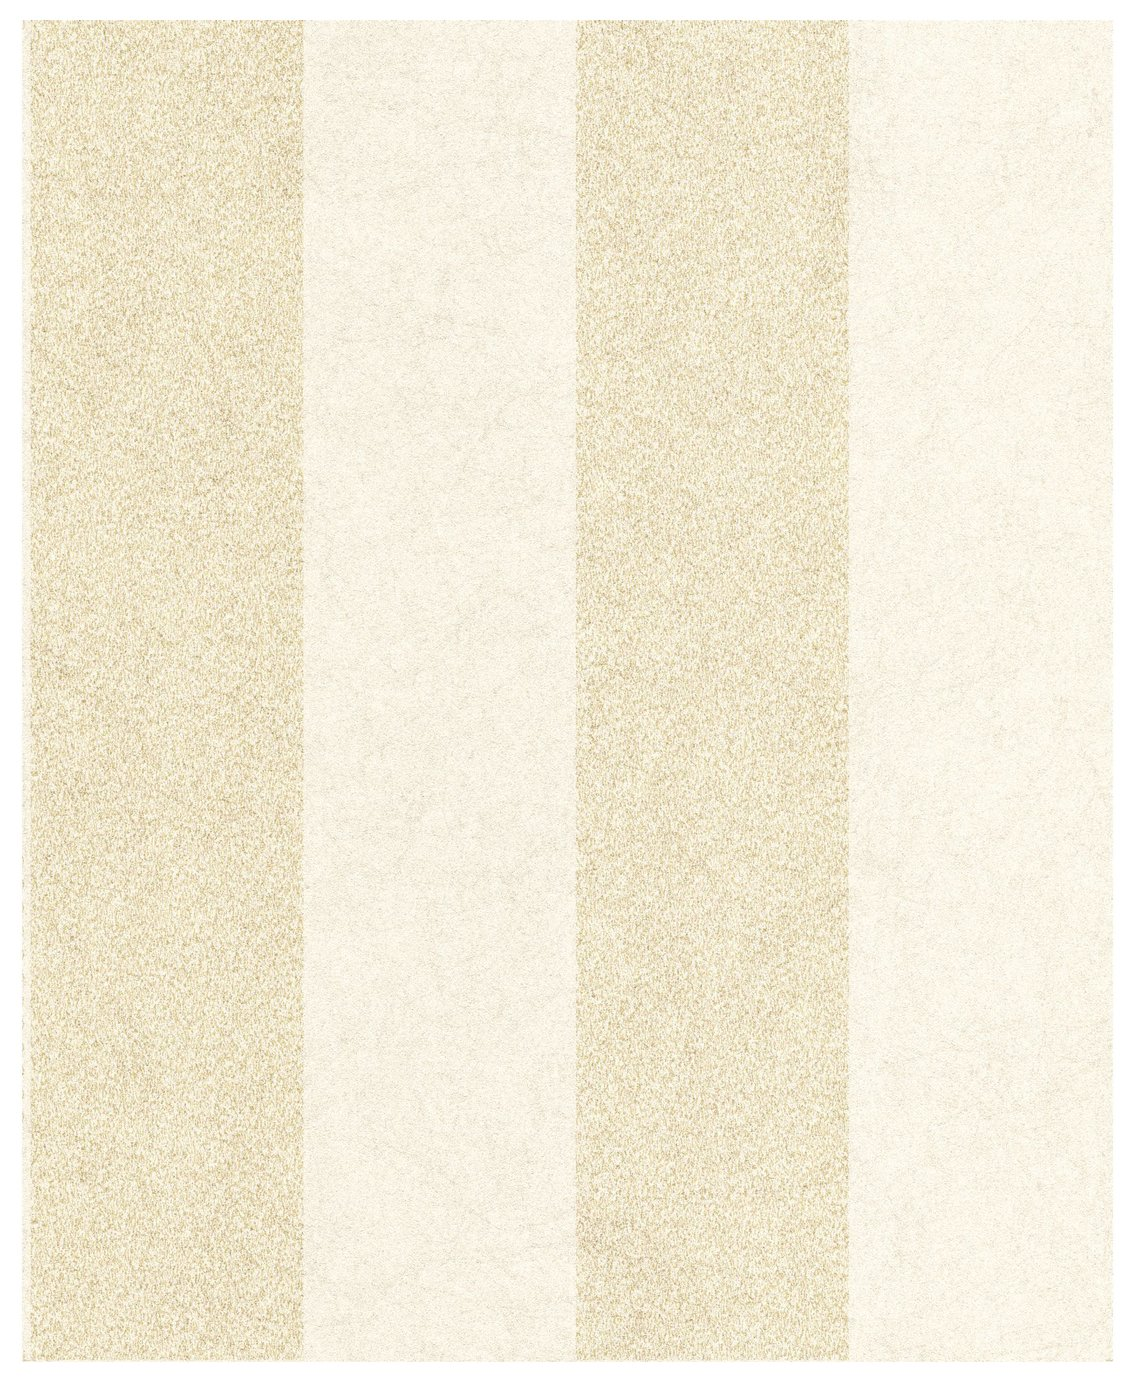 Image of Graham & Brown Artisan Stripe Wallpaper Oyster Gold